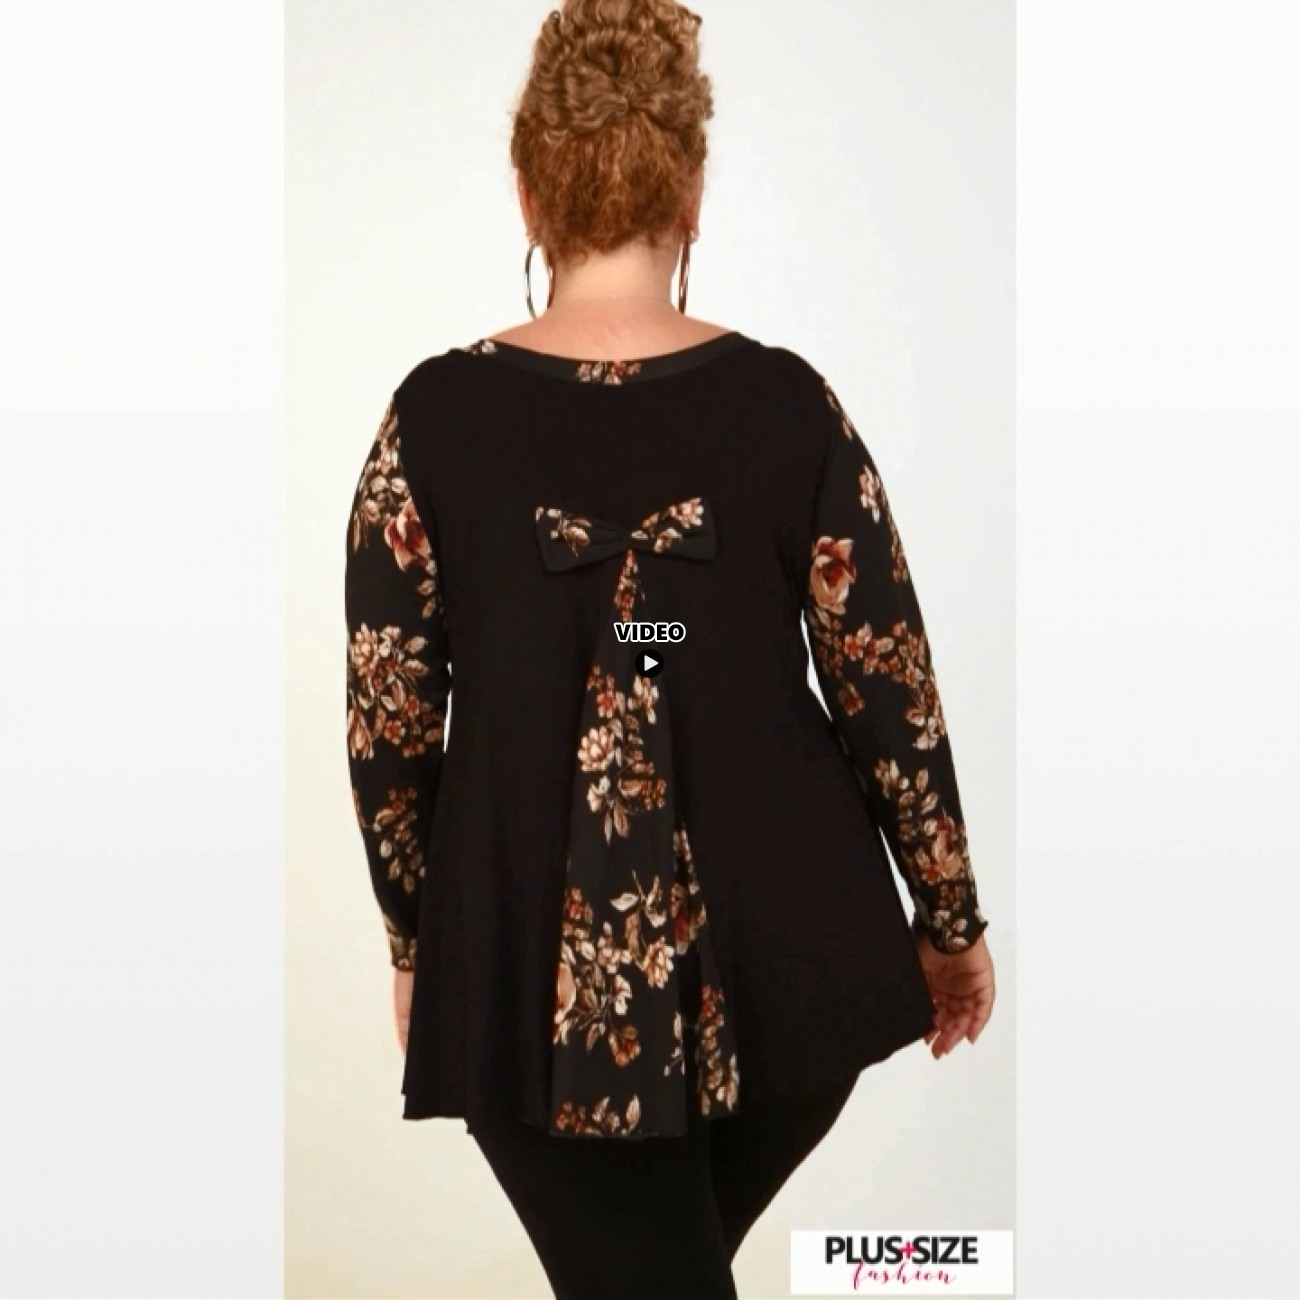 B20-4789 Evaze Blouse with bow on the back